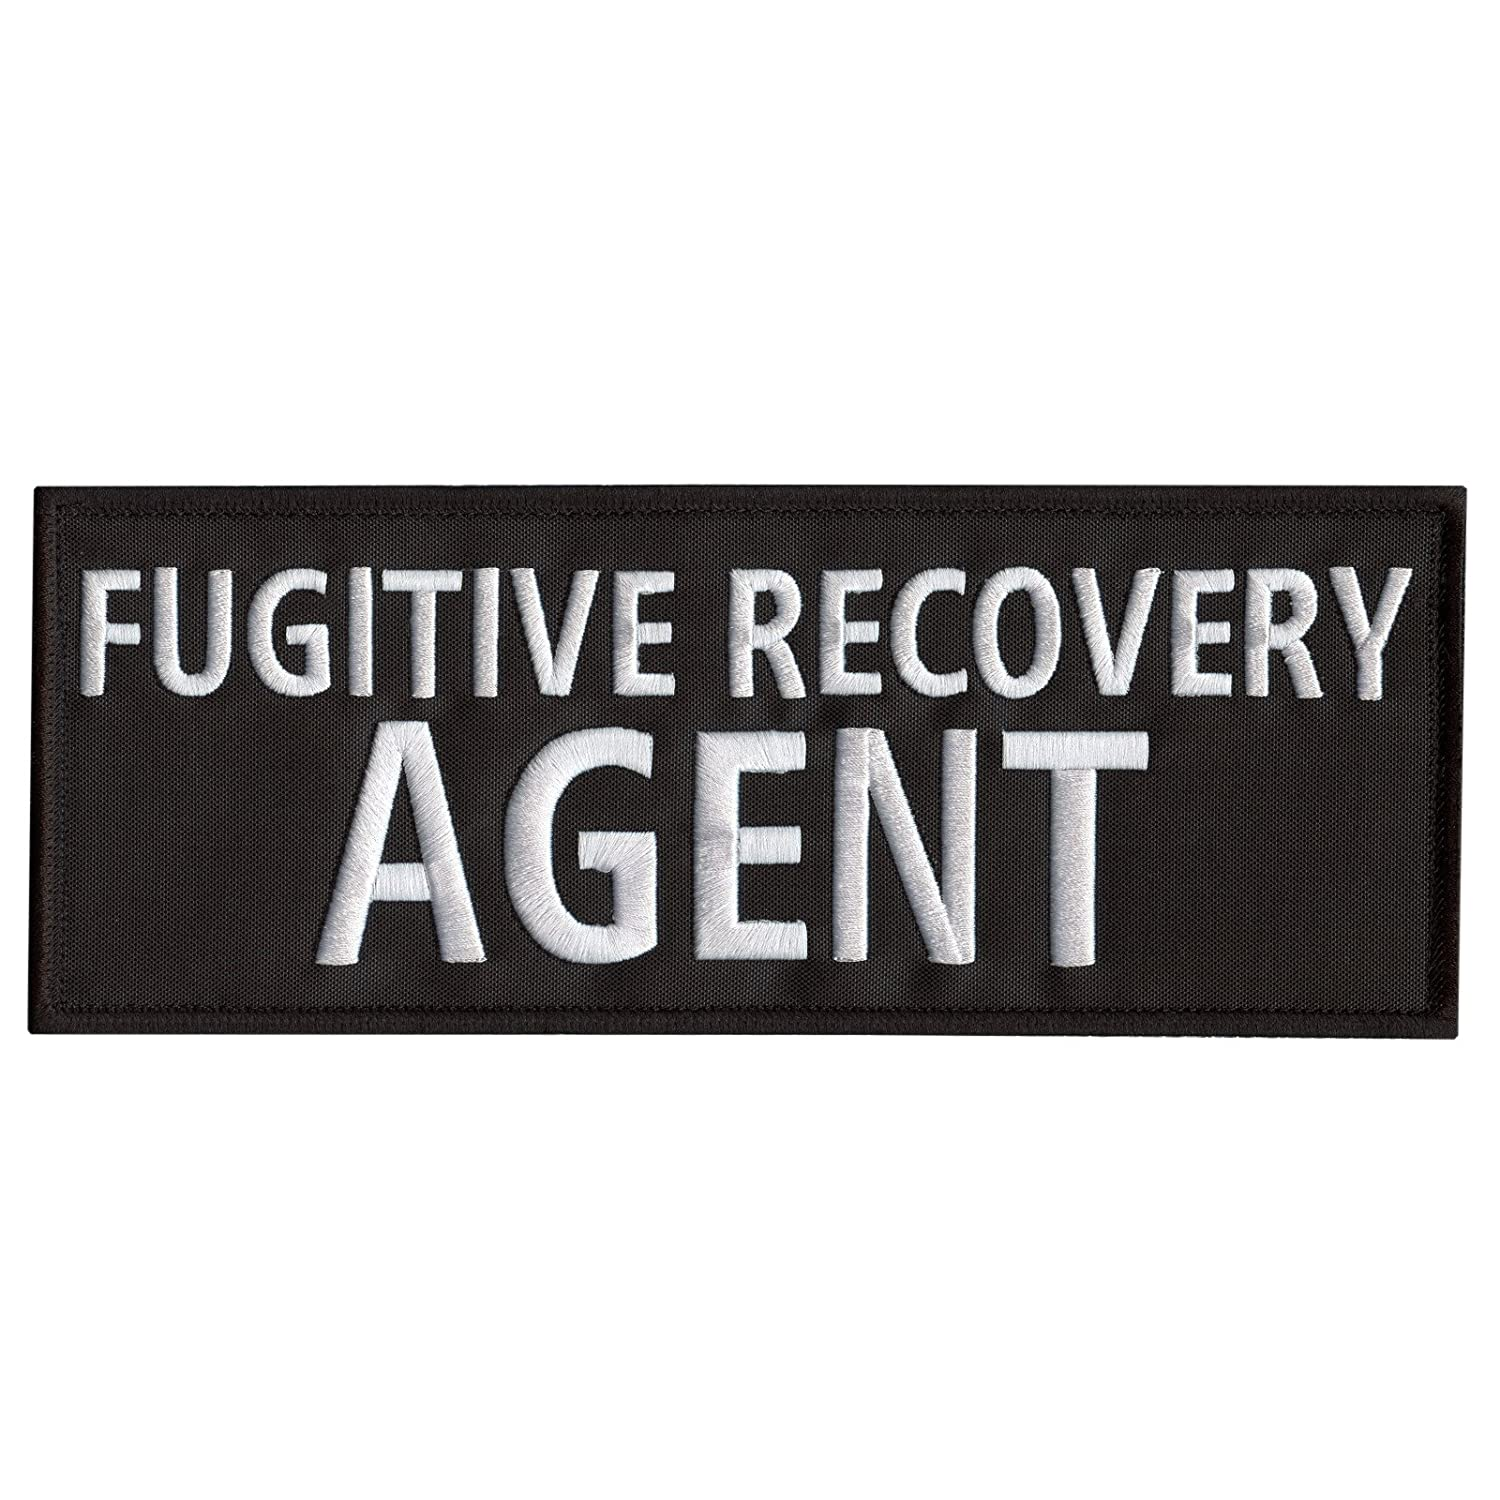 FUGITIVE RECOVERY AGENT Large XL 10x4 Body Armor Plate Carrier Fastener /Écusson Patch